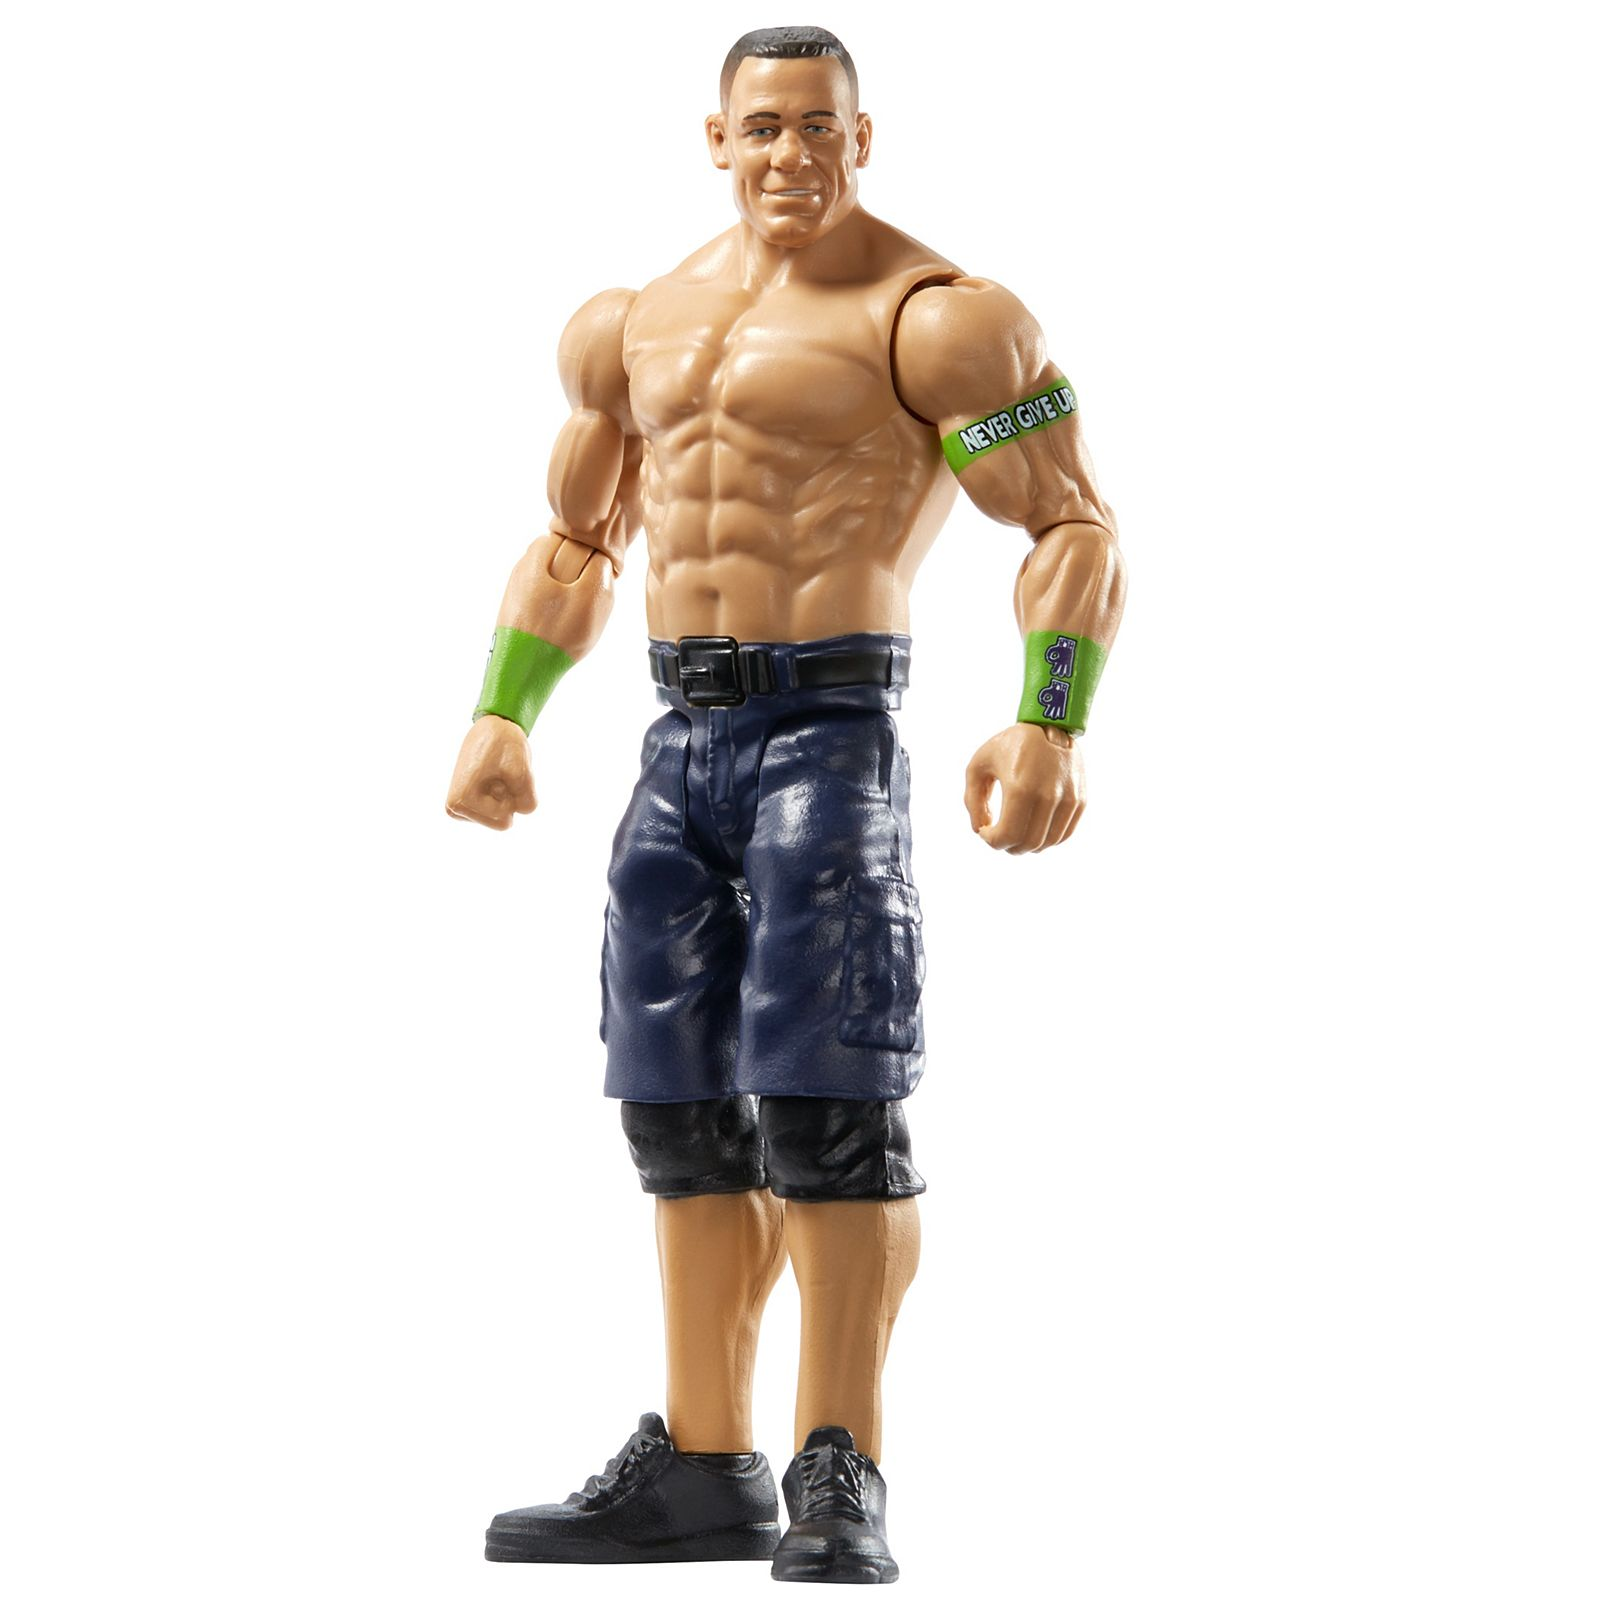 Wwe Sound Slammers John Cena Motion Activated Action Figure